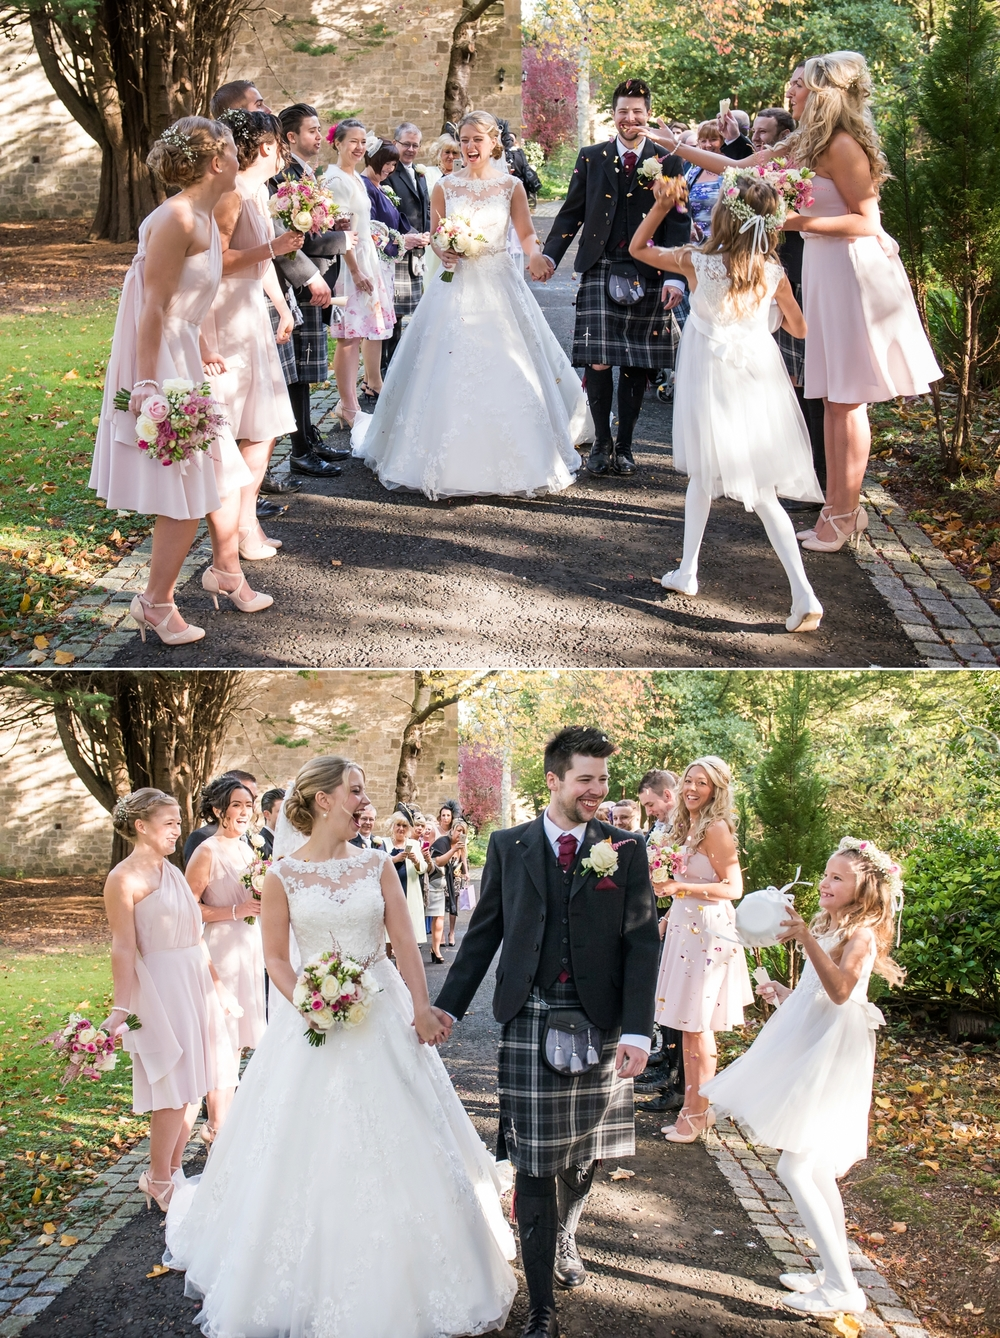 Kelly ross carberry tower braw brides the stress organising a wedding melted away and i knew it was all worth it in that moment it was the happiest moment in my life so far ombrellifo Image collections